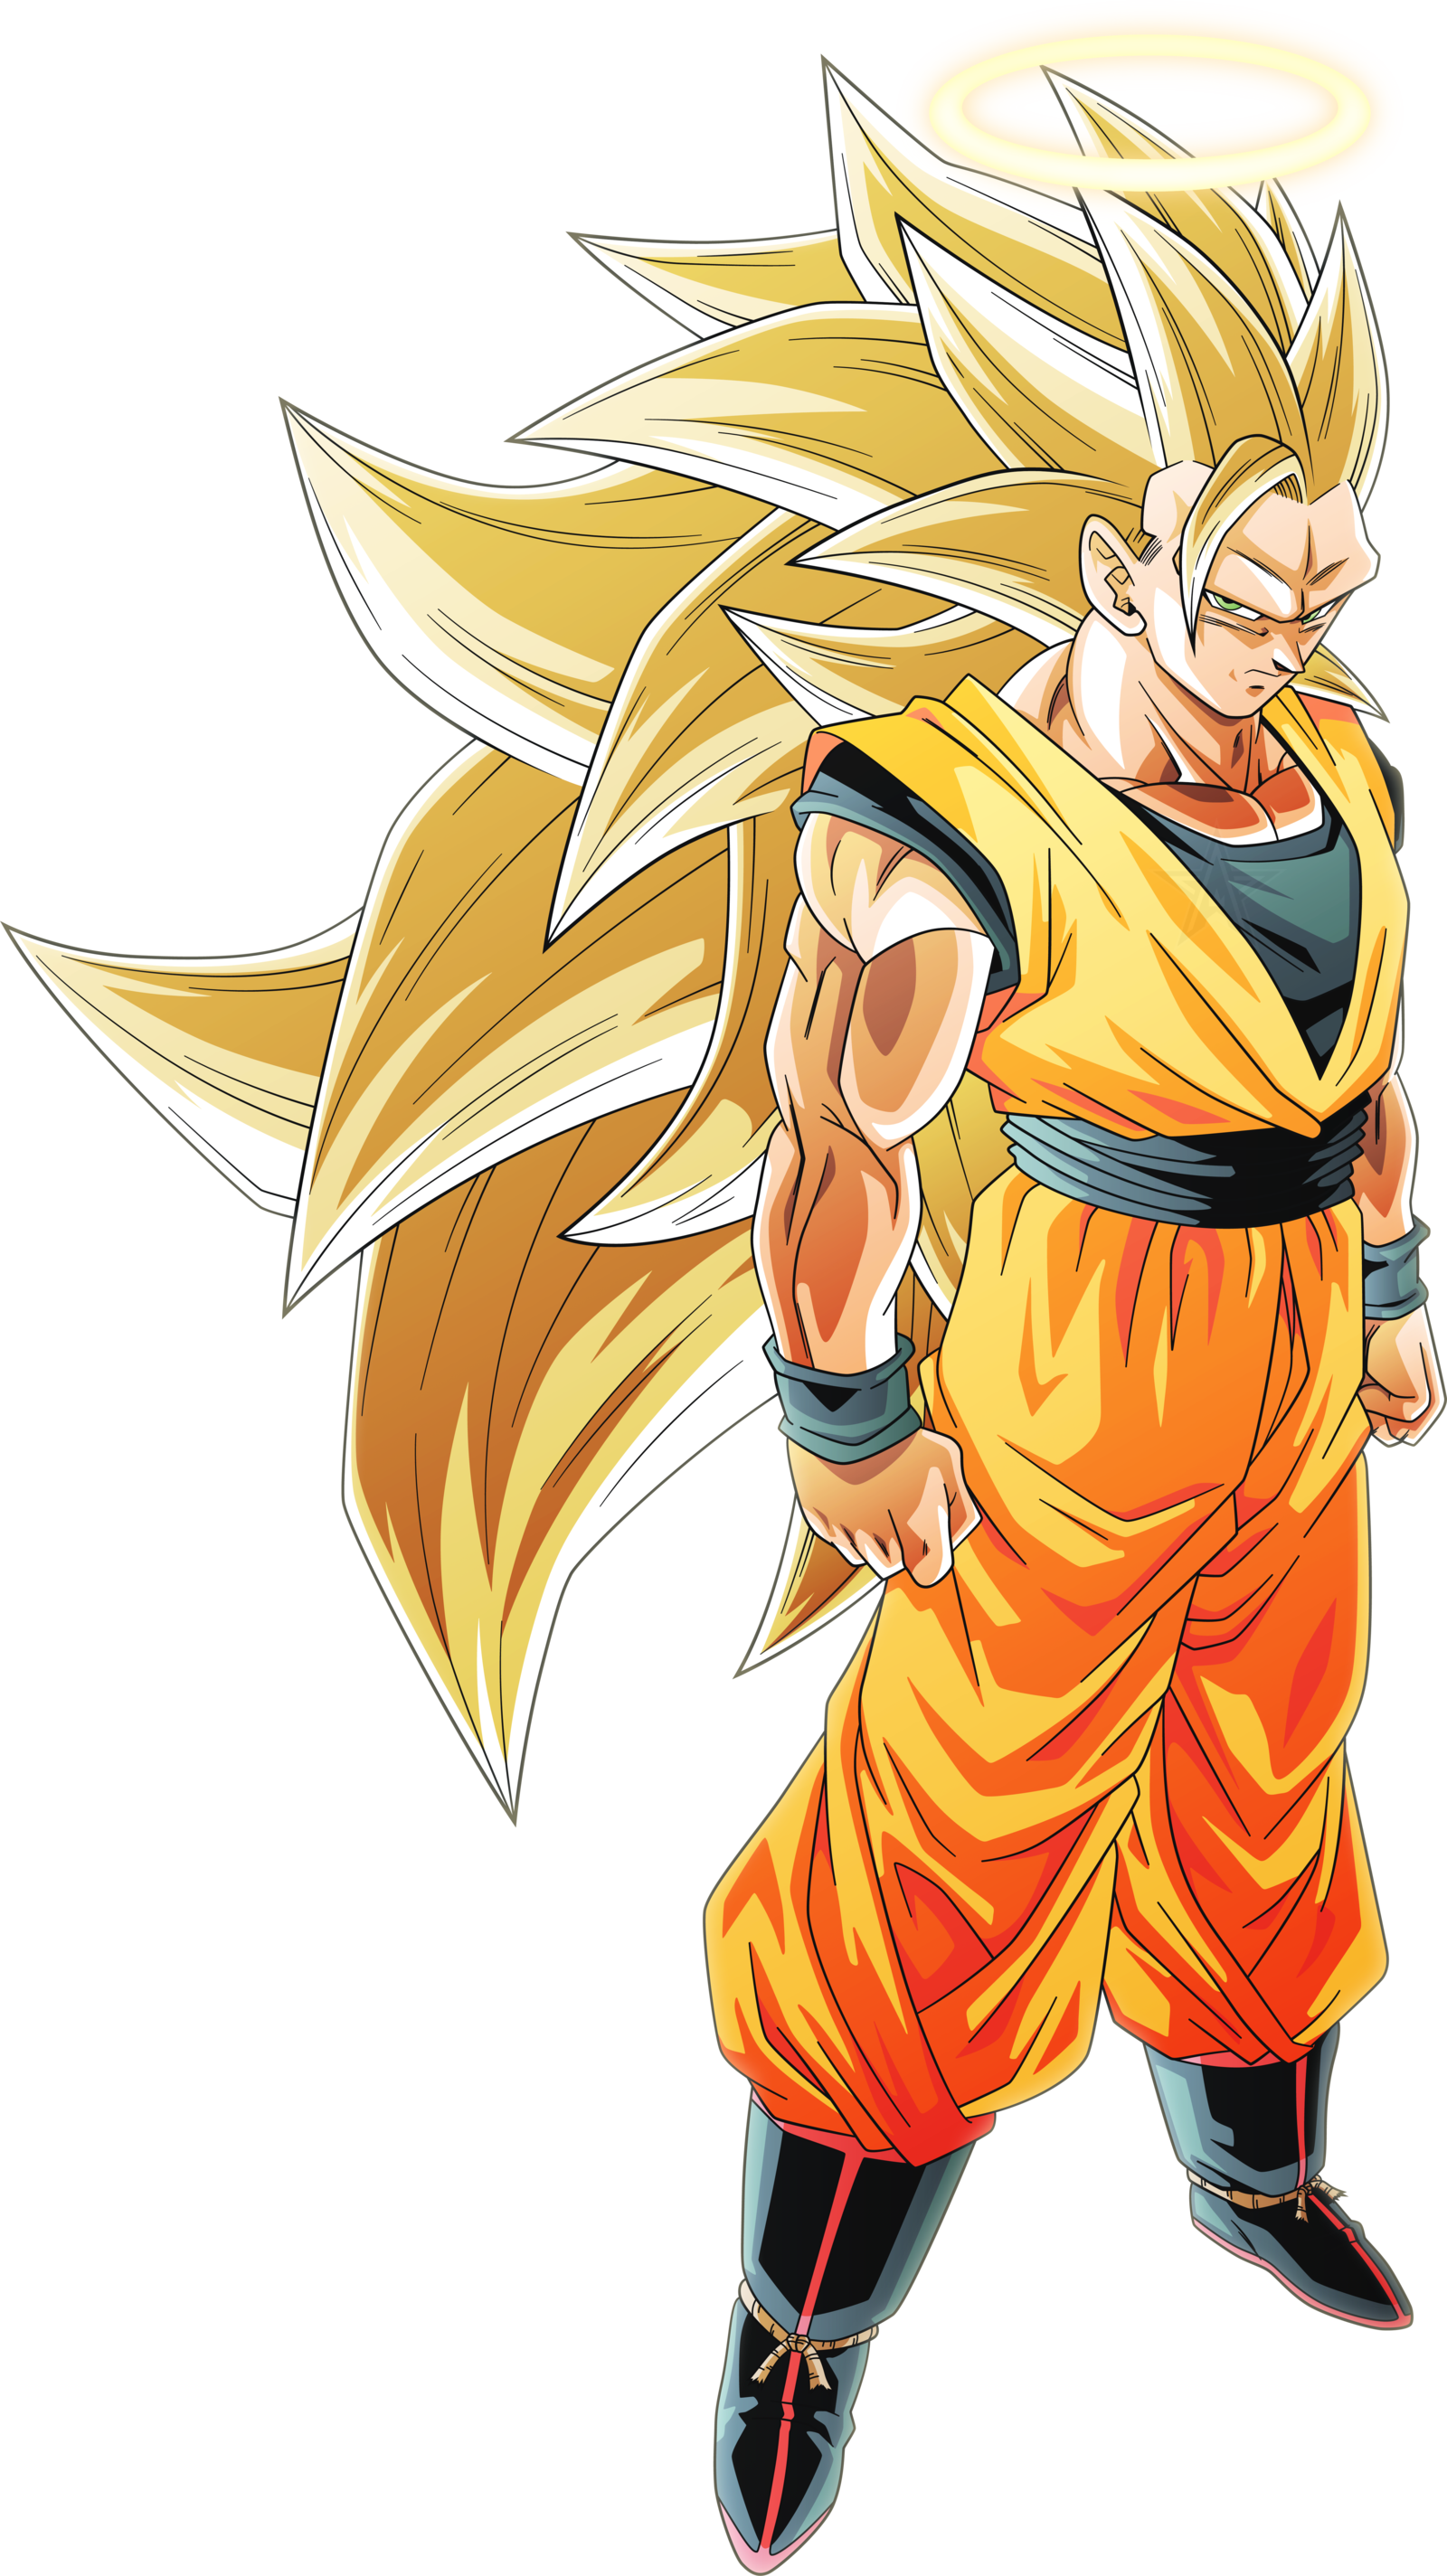 Super saiyan 3 goku png. A anime manga thread